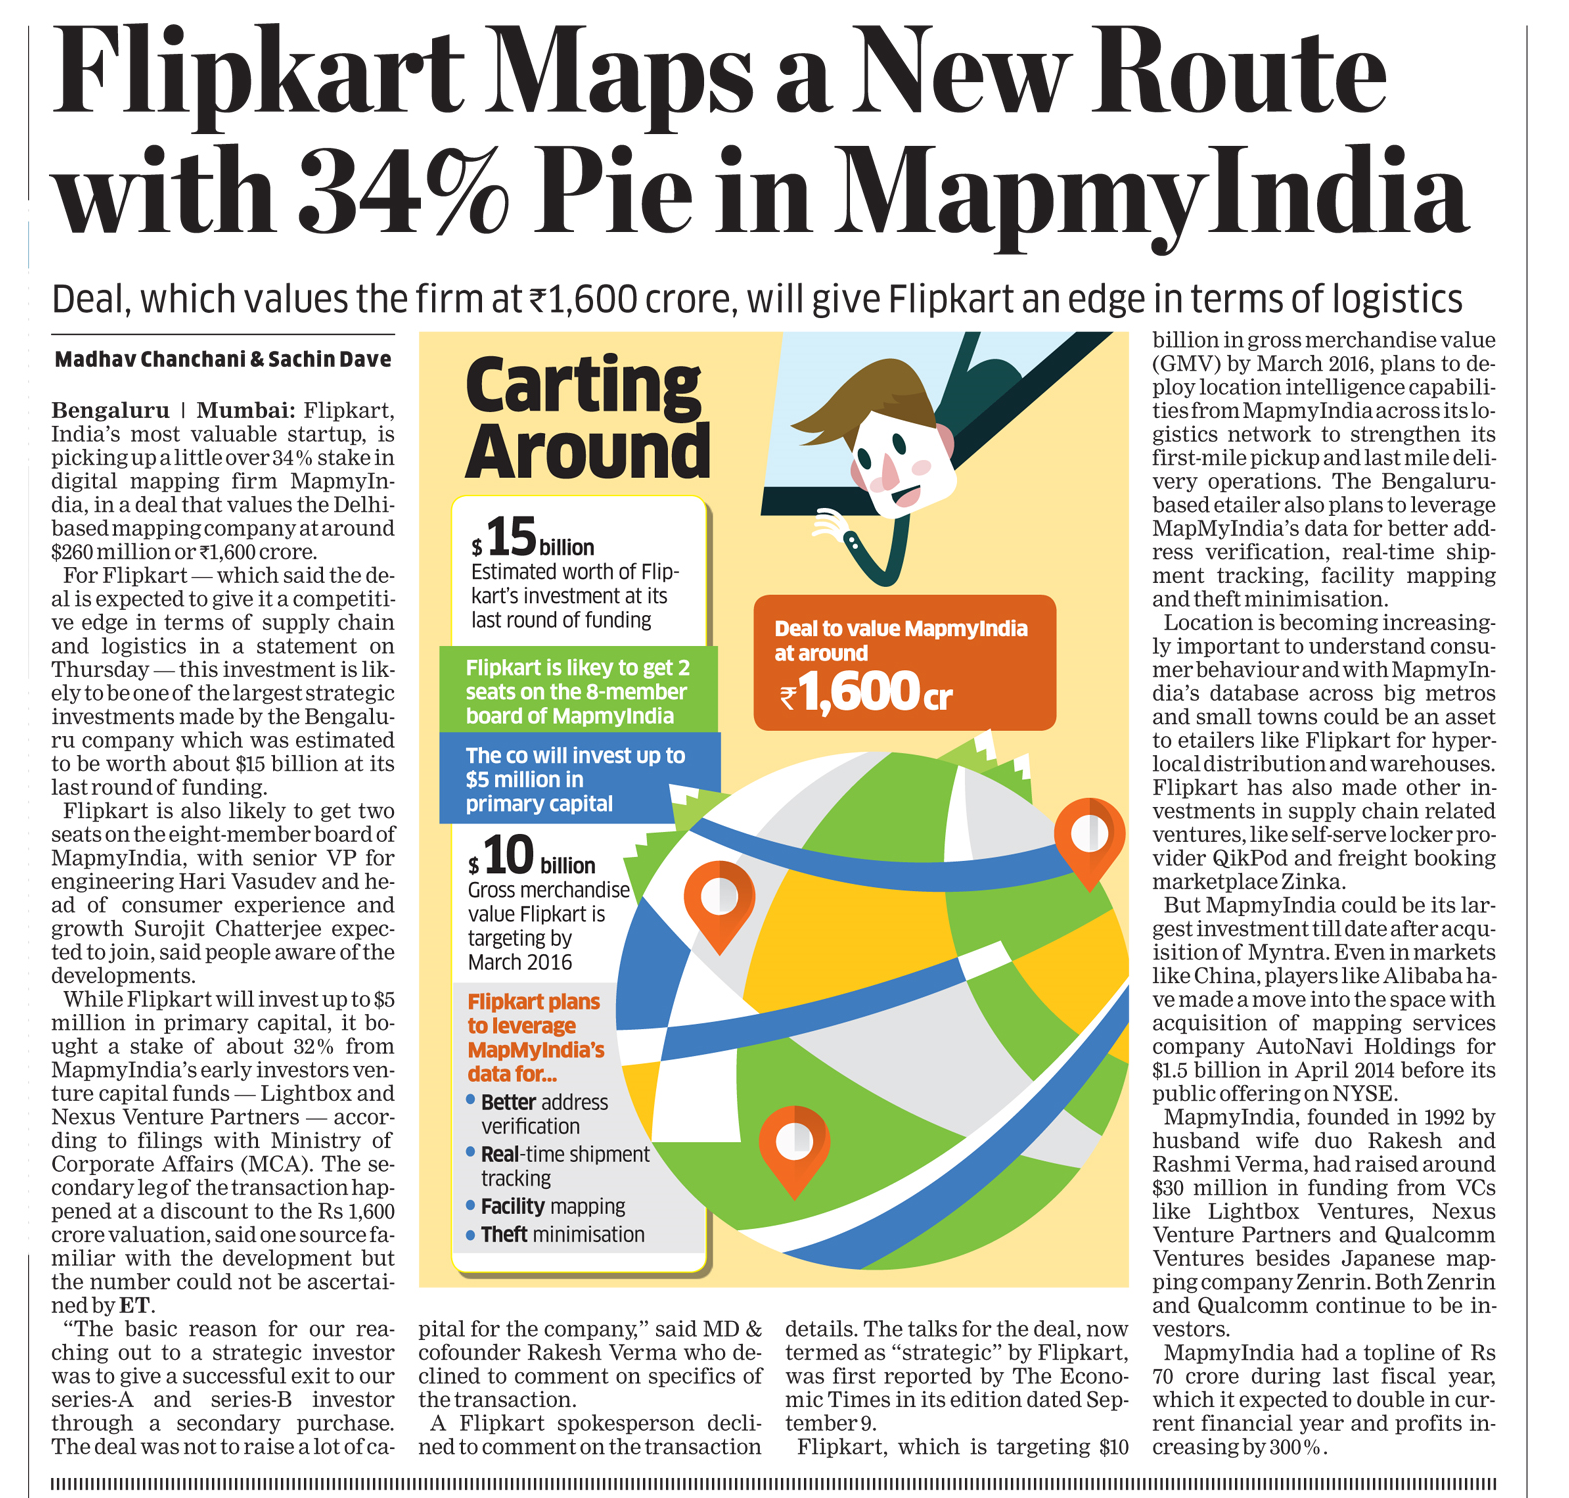 """Flipkart Maps a New Route with 34% Pie in MapmyIndia"", The Economic Times - December 4, 2015"